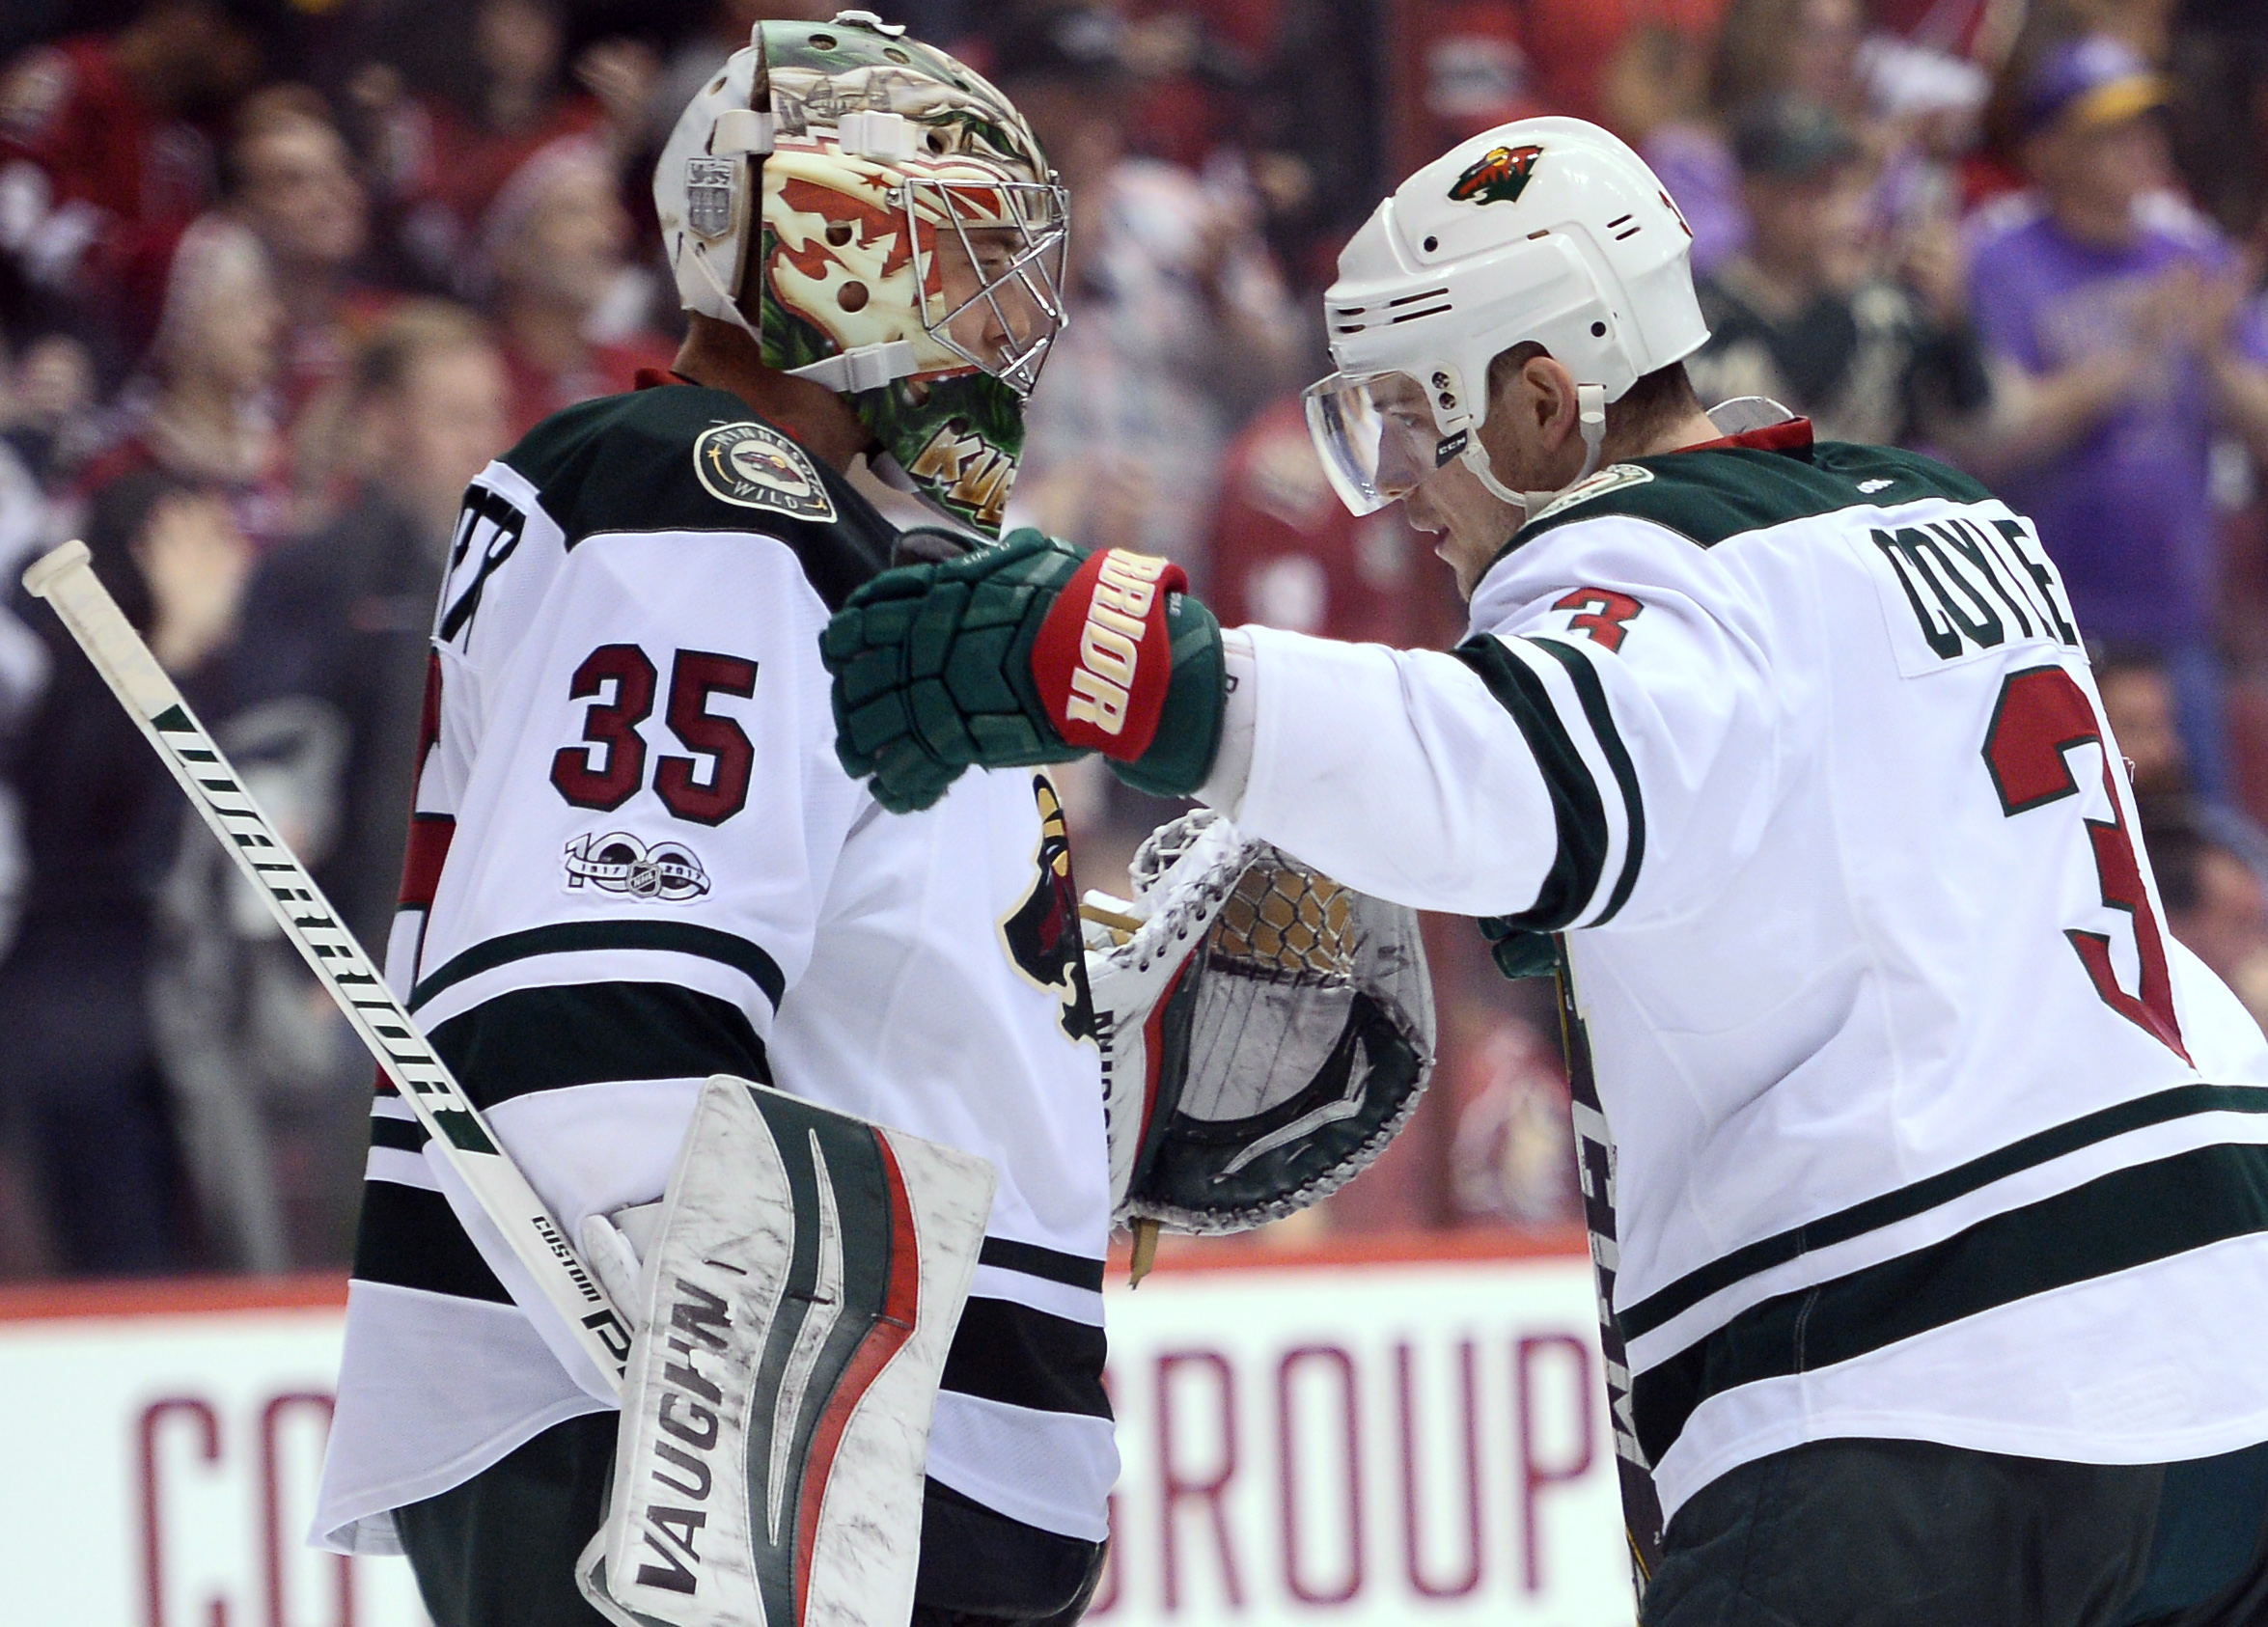 10002608-nhl-minnesota-wild-at-arizona-coyotes